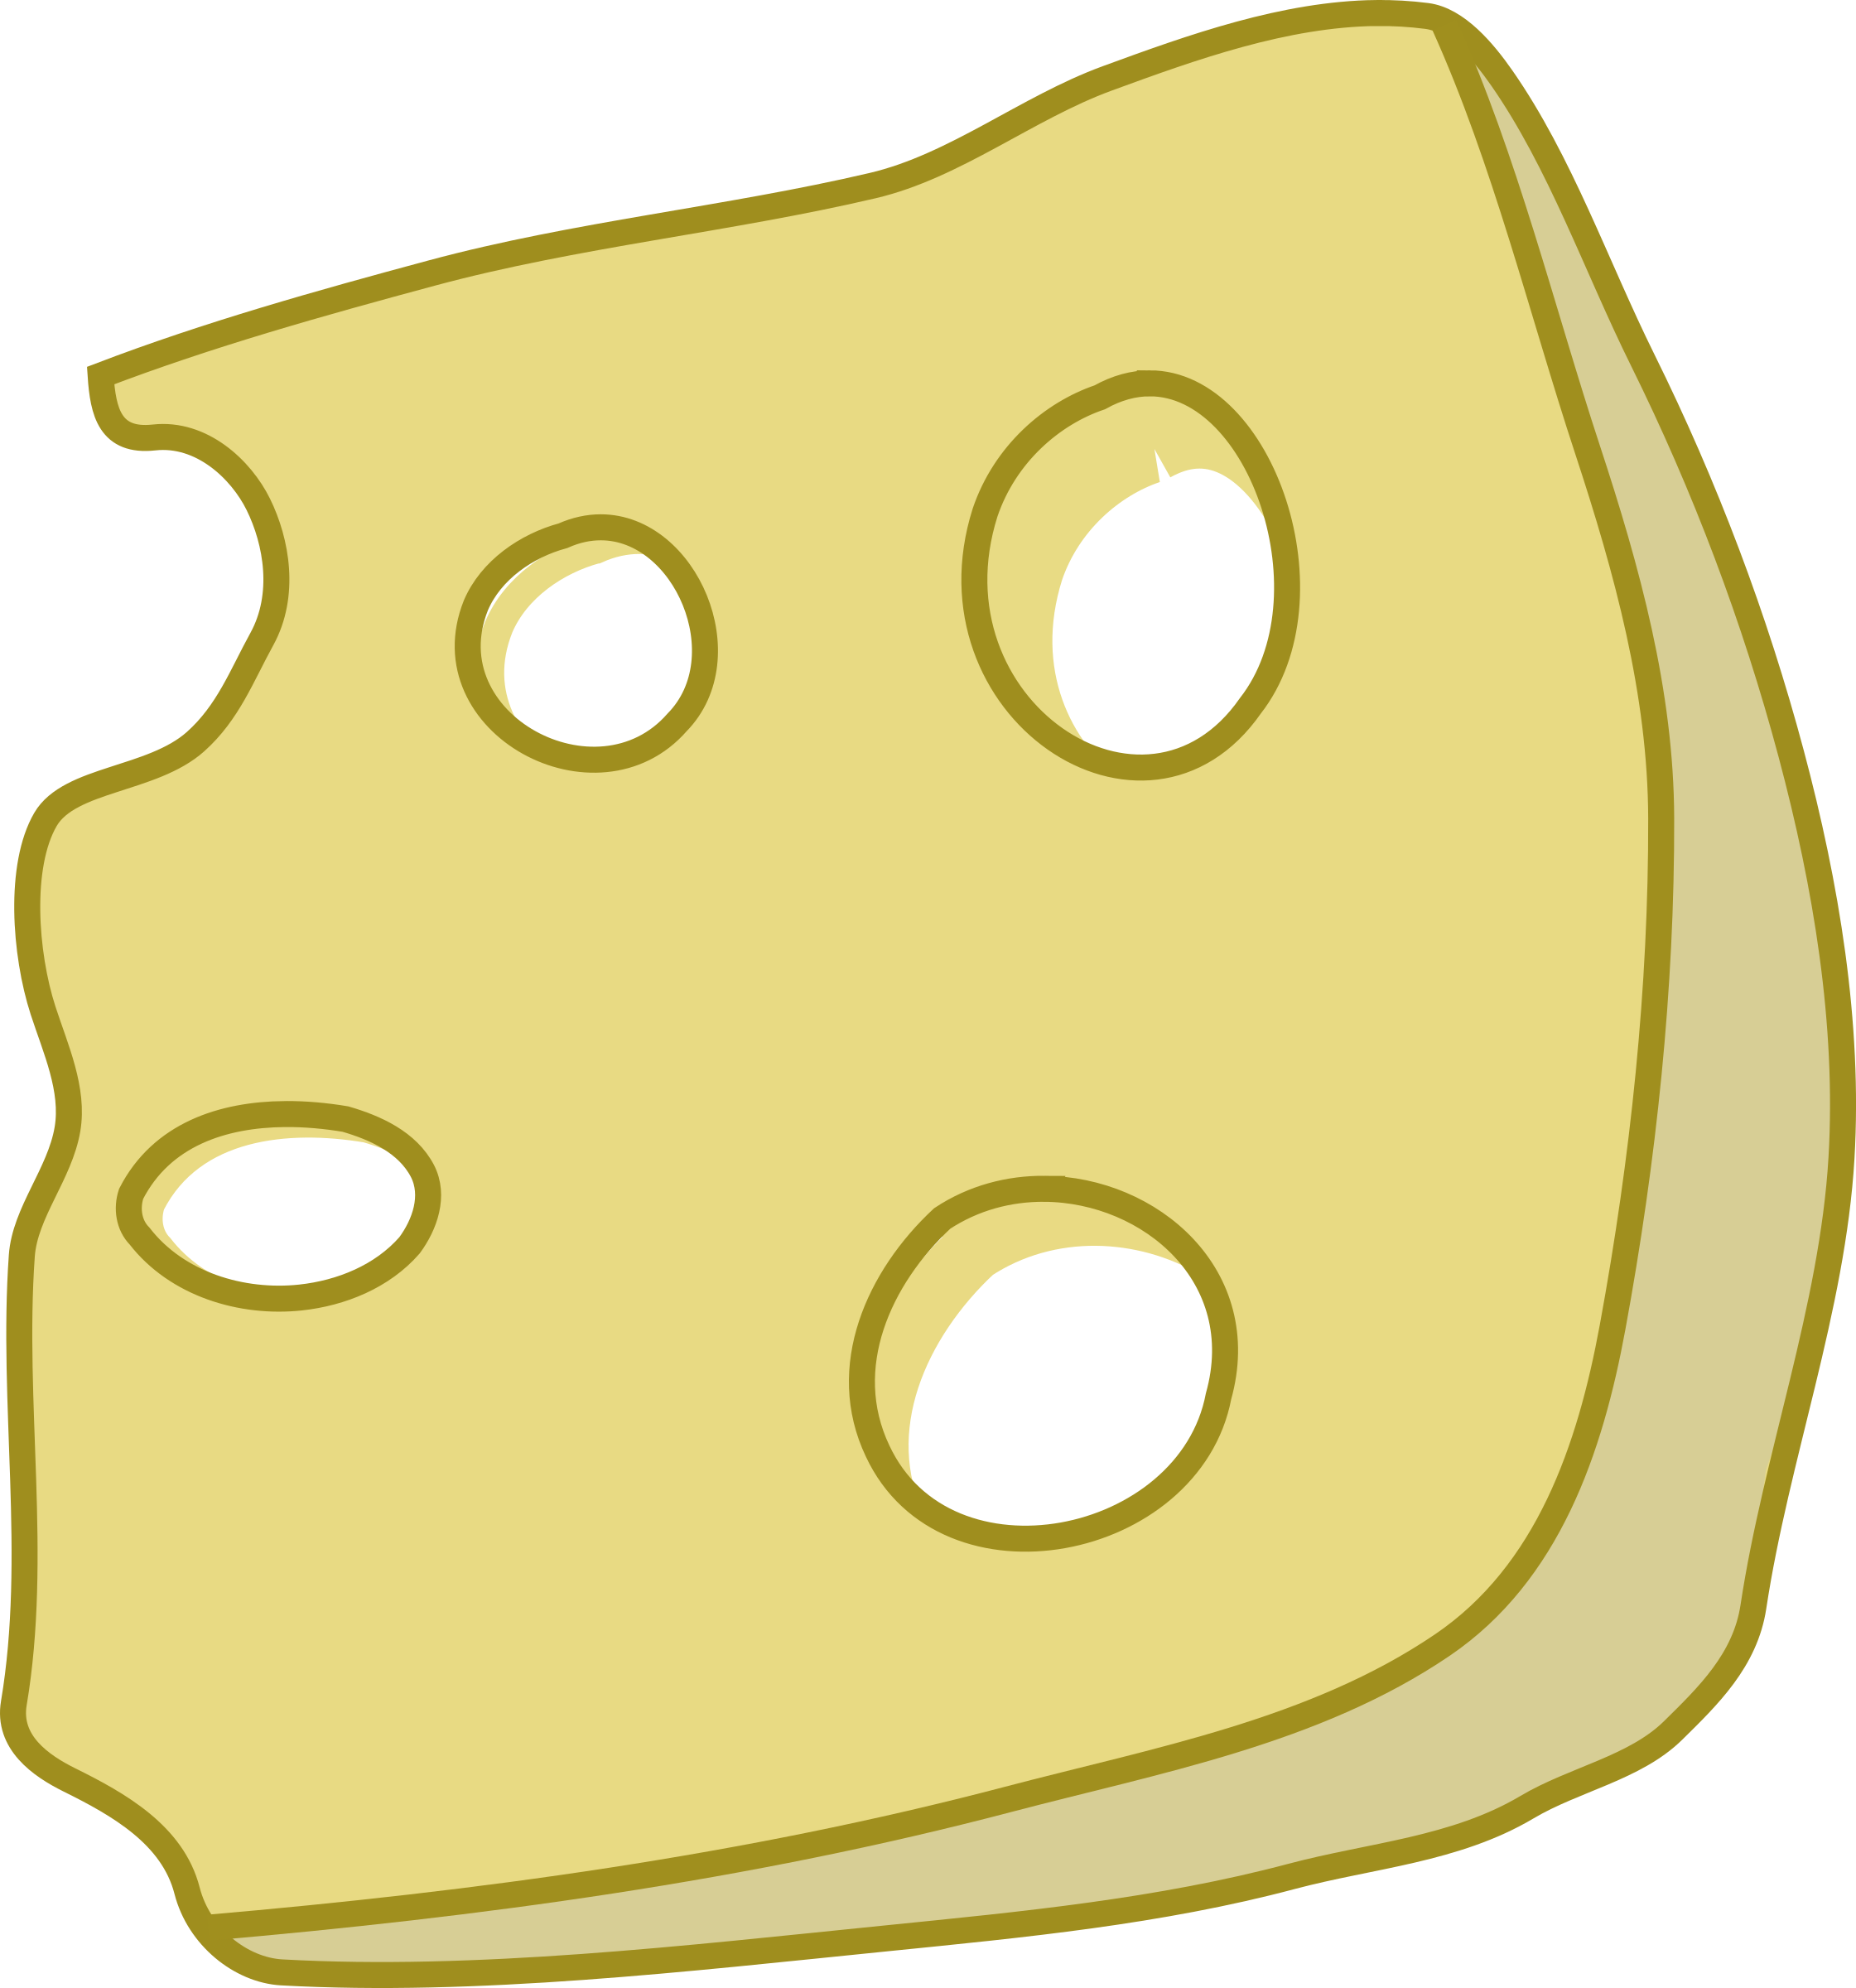 Cheese by laobc